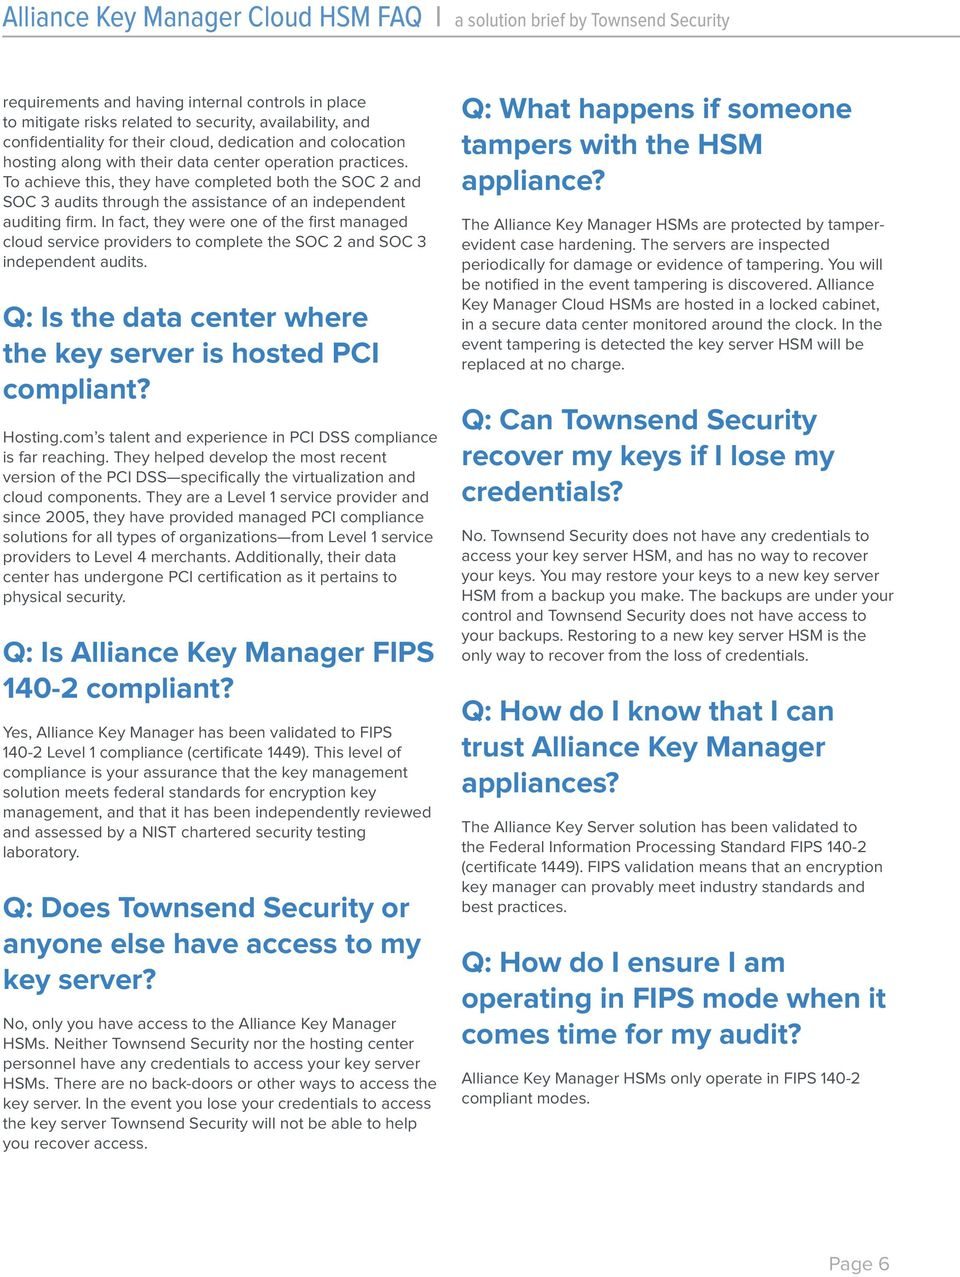 Alliance Key Manager Cloud HSM Frequently Asked Questions - PDF